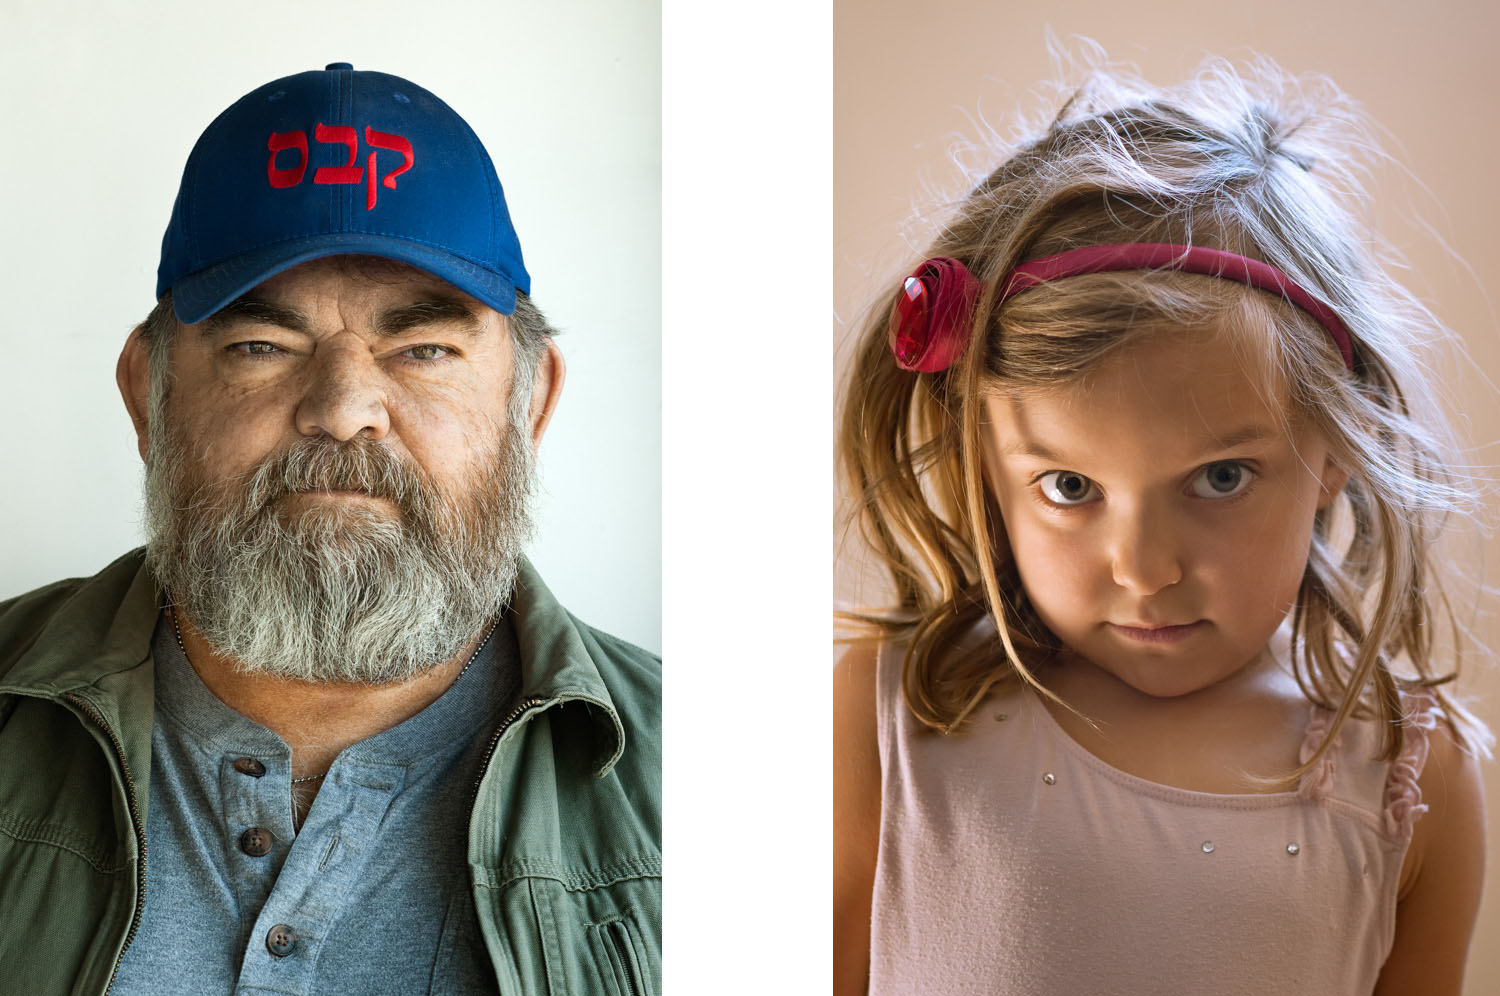 Headshot of an older man and a young girl